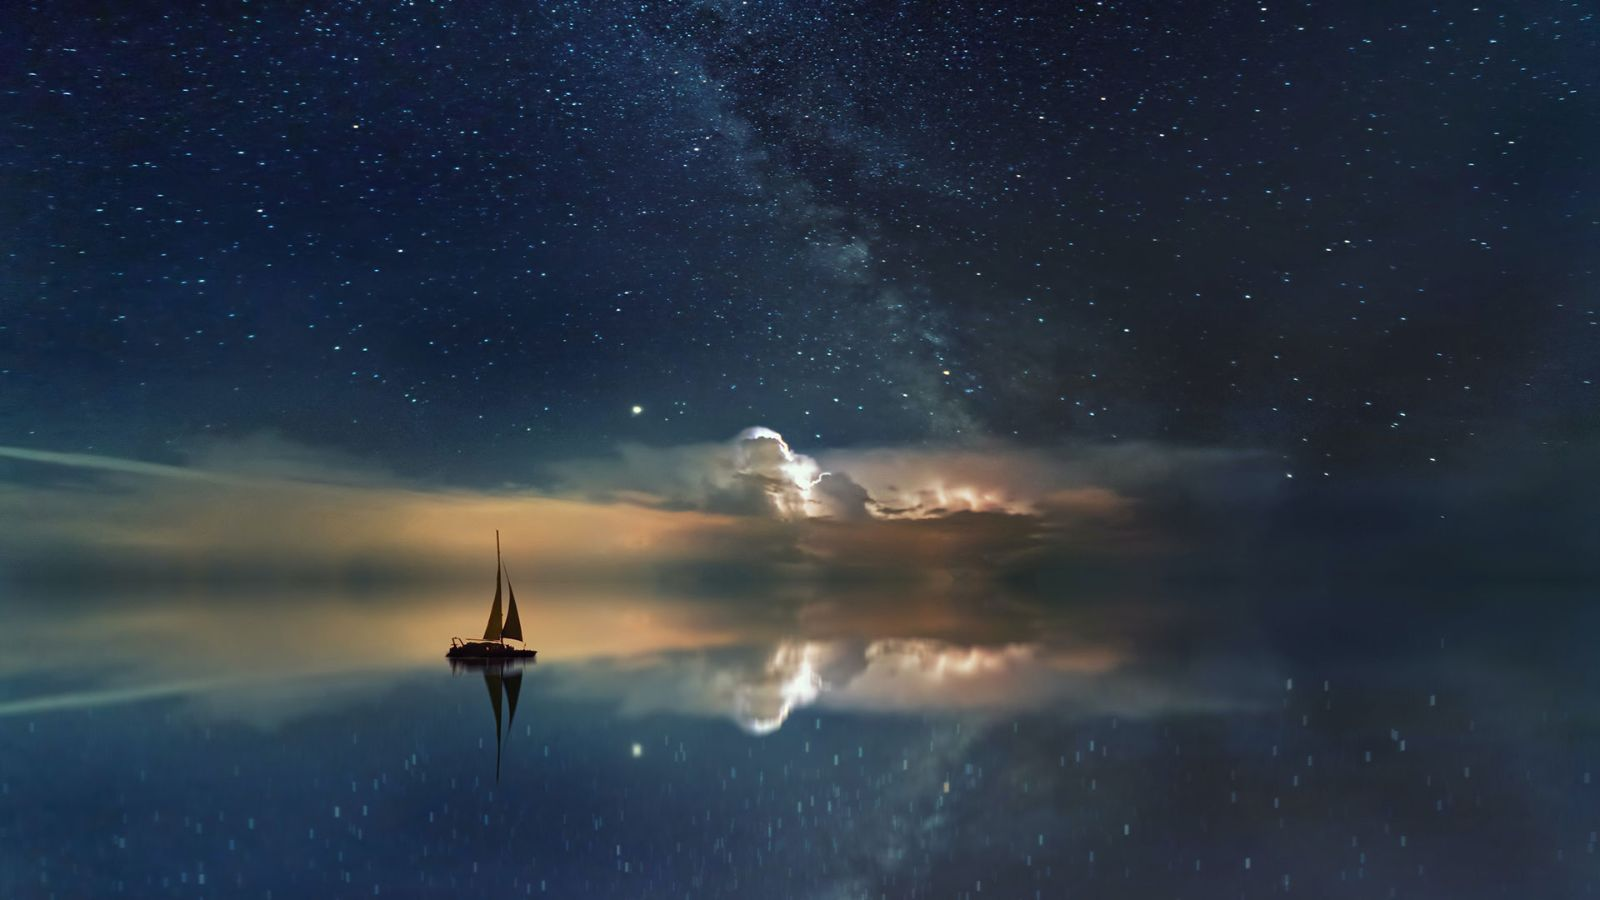 A sail boat with stars and clouds in the night sky in the backgr